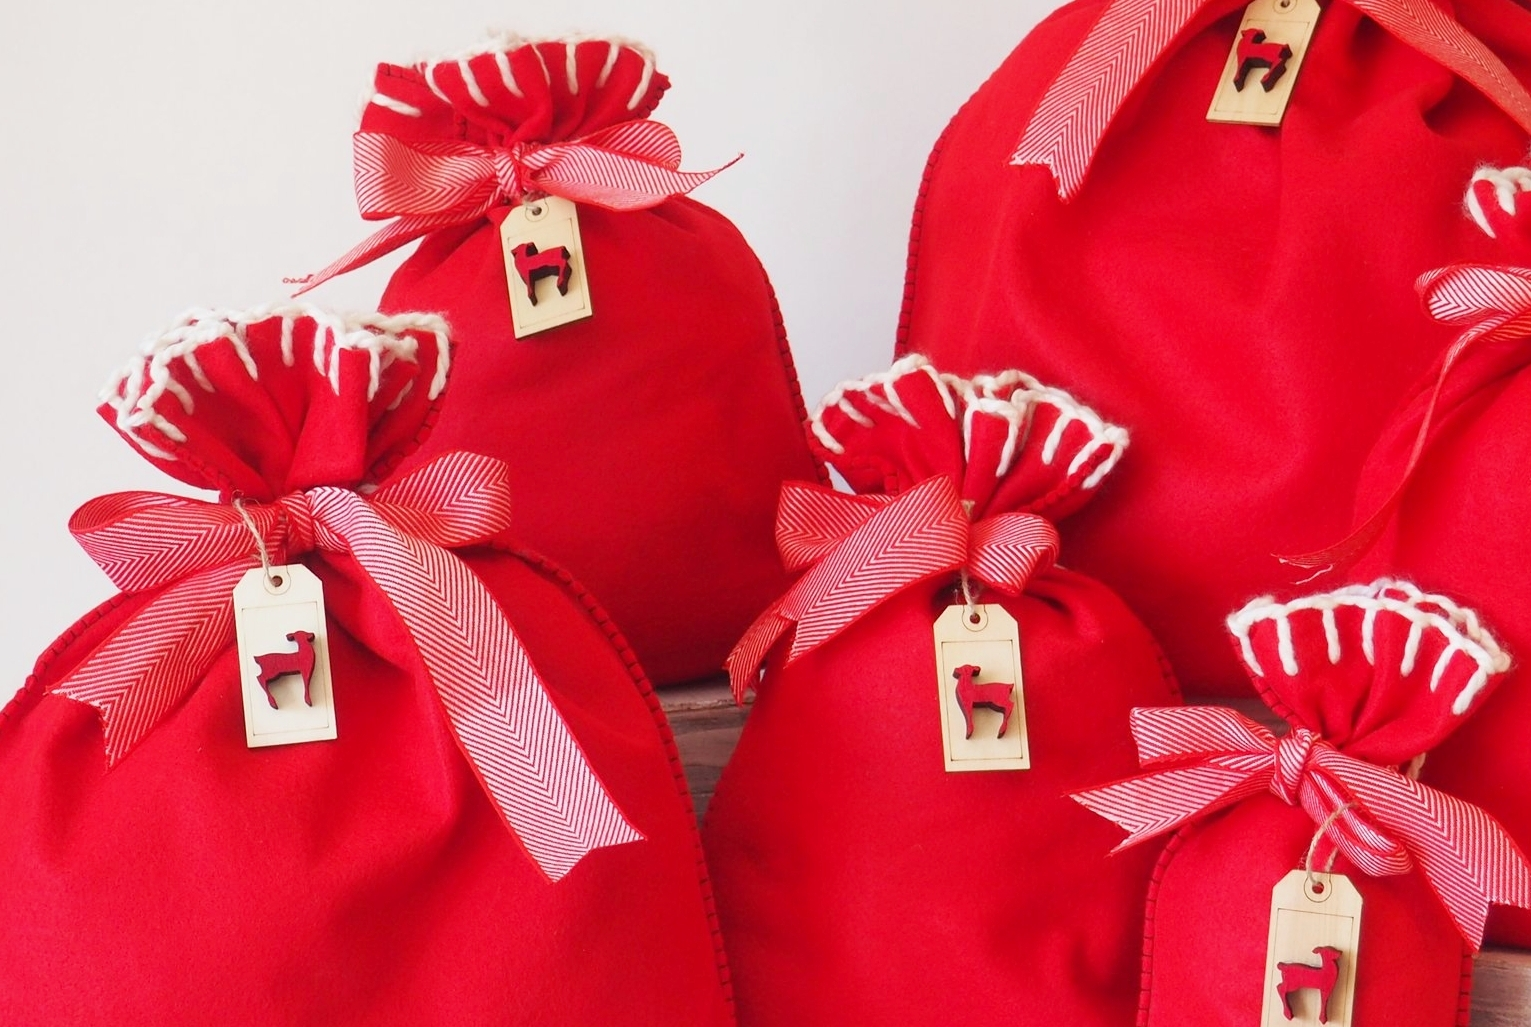 Every bag has matching ribbons. - There is a ribbon guide on the back of the bags to help the ribbon stay in place as it gathers around the fabric.